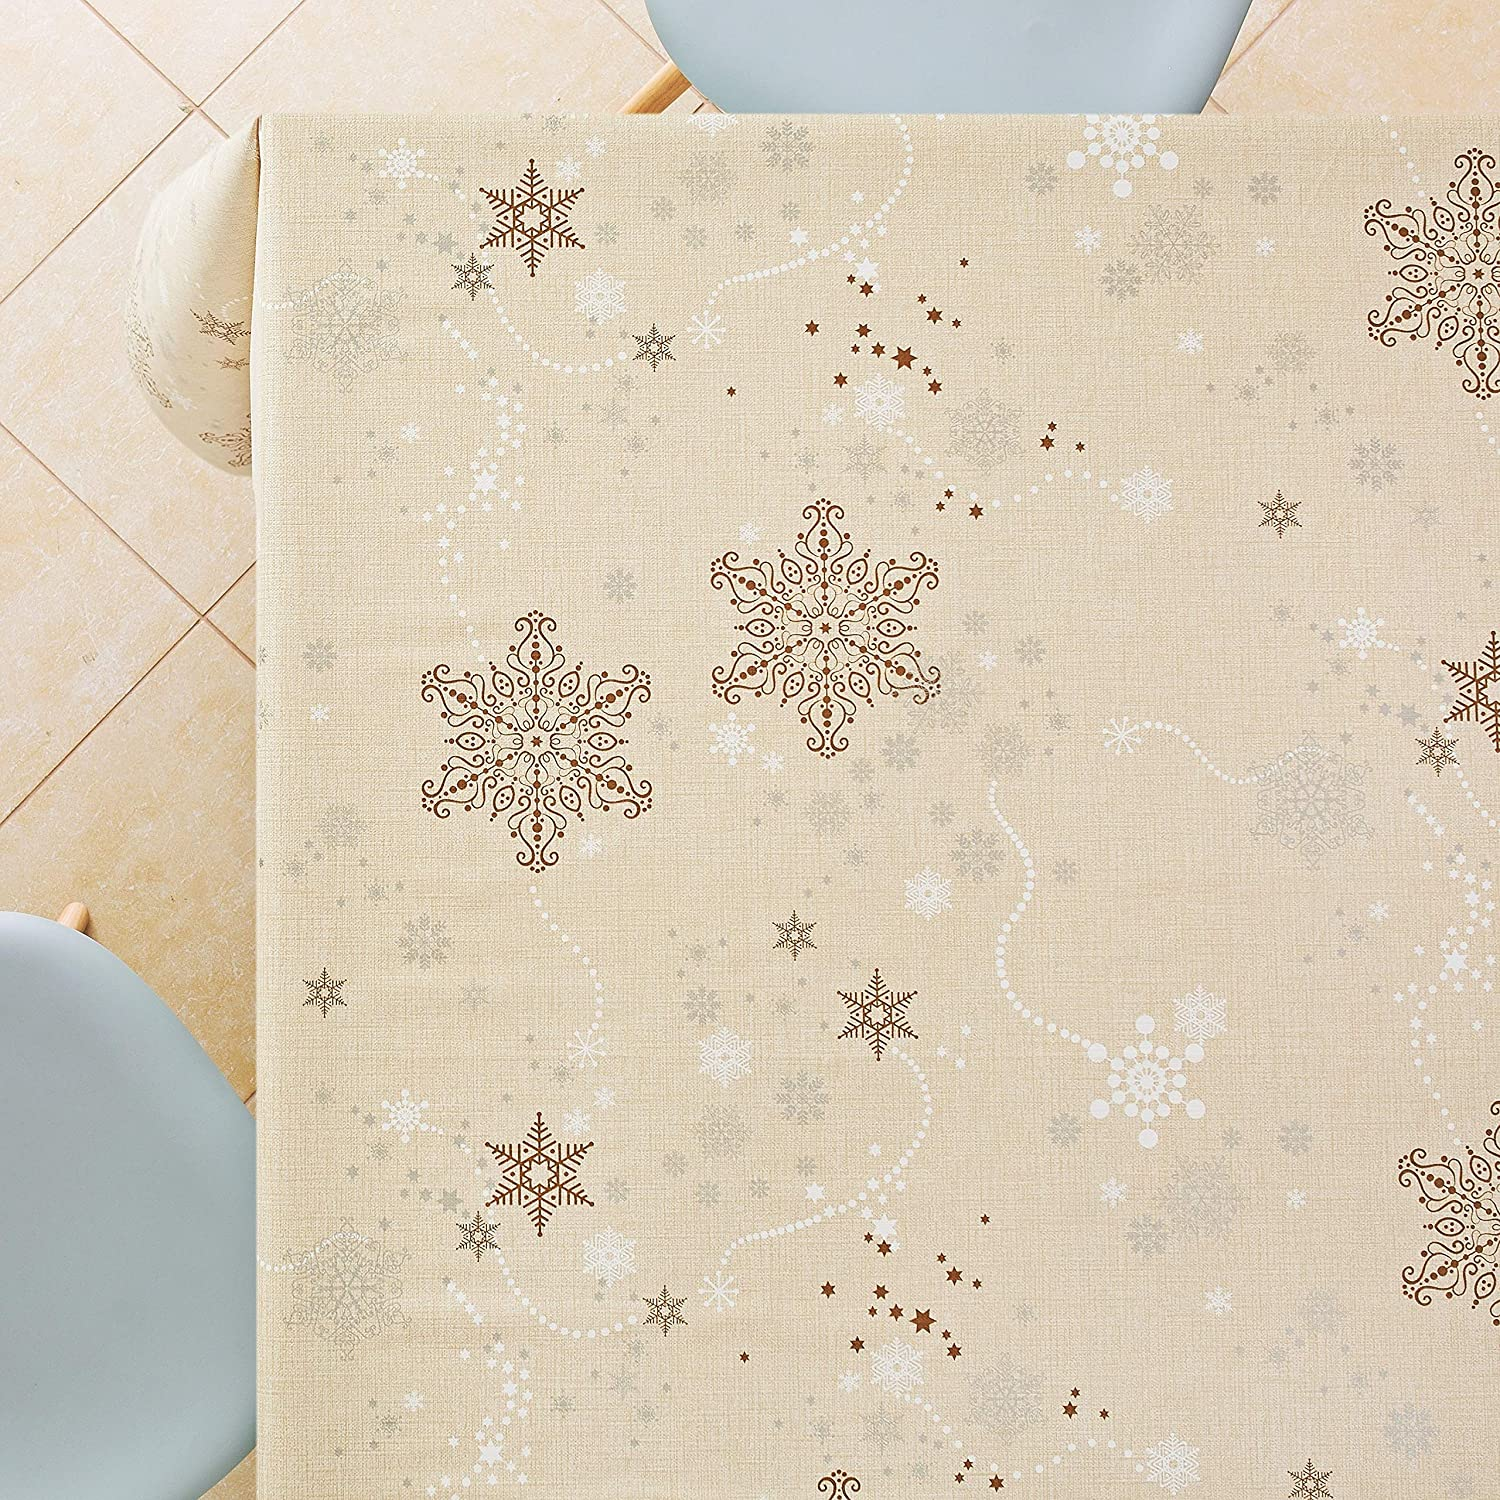 250 x 140cm Reusable Heavy Weight Oilcloth With Embossed Finish KP HOME Festive Merry Christmas Xmas Wipe Clean Vinyl PVC Cream Tablecloth With Snowflakes 98 x 55in For 6-8 Place Settings